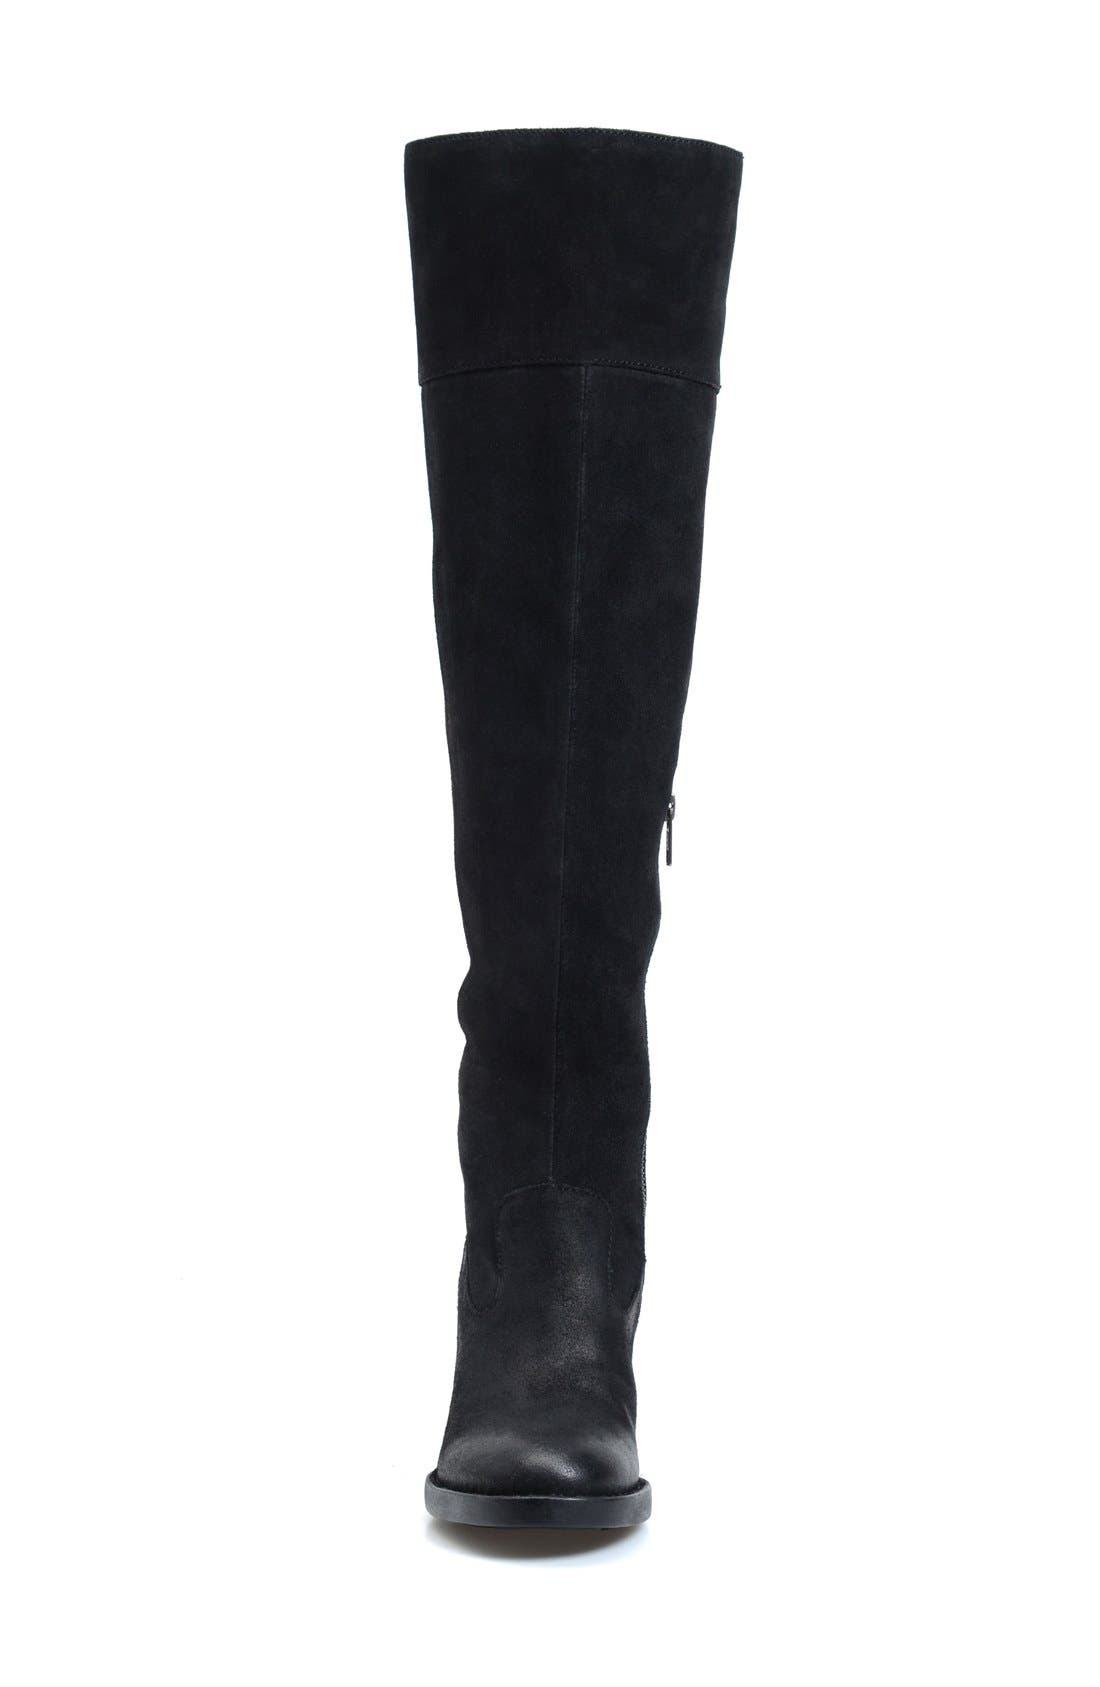 'Kathleen' Over the Knee Boot,                             Alternate thumbnail 3, color,                             001